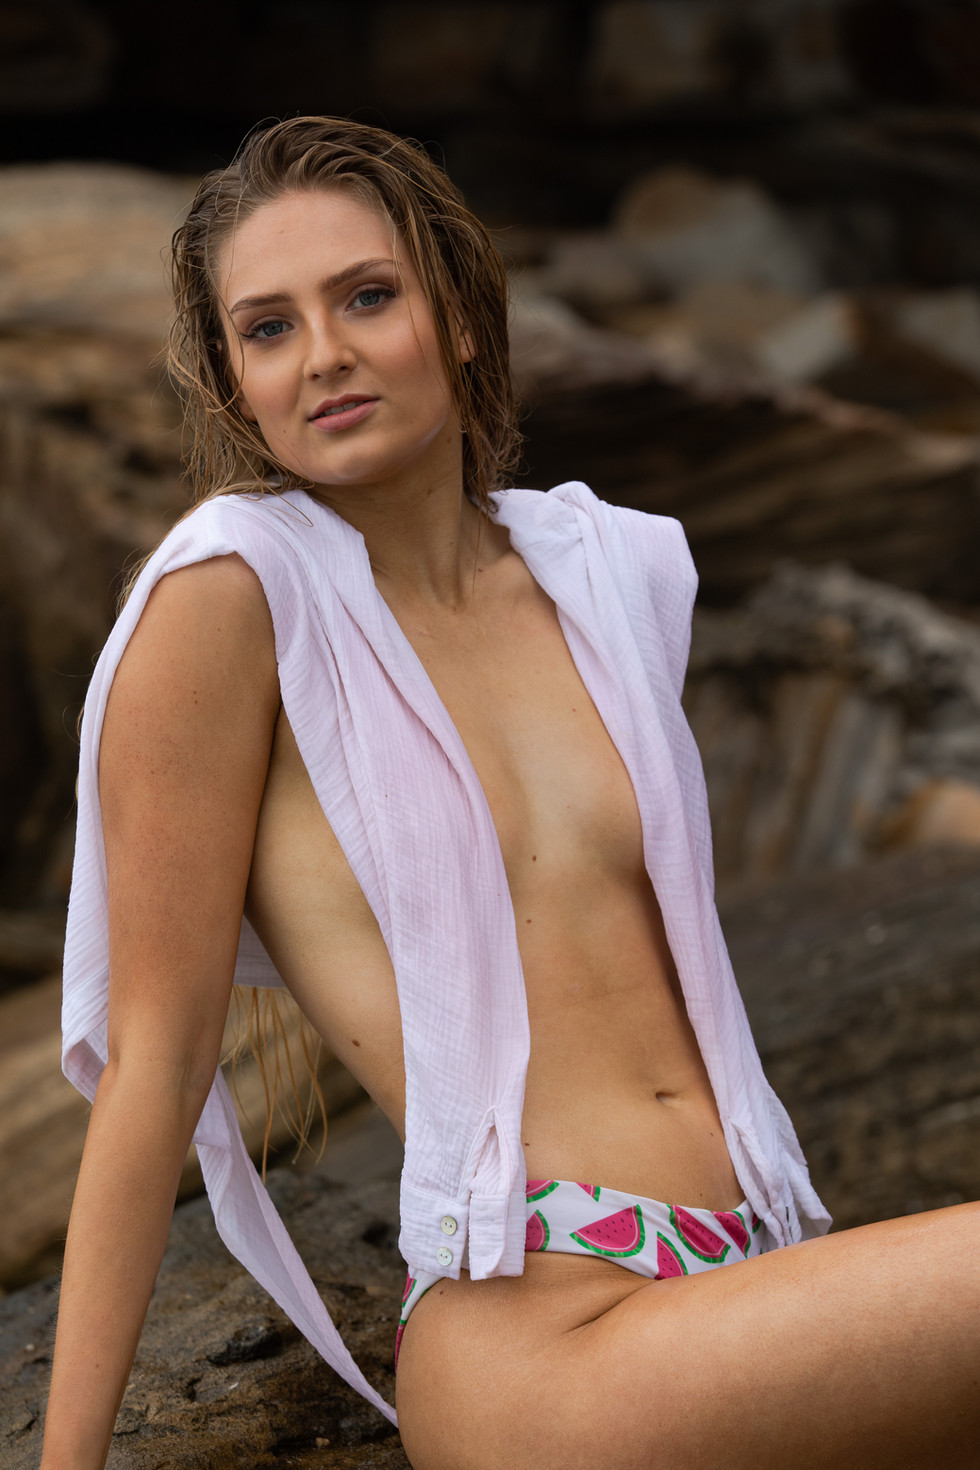 Emma_by_CoogeePhotography-337816.jpg